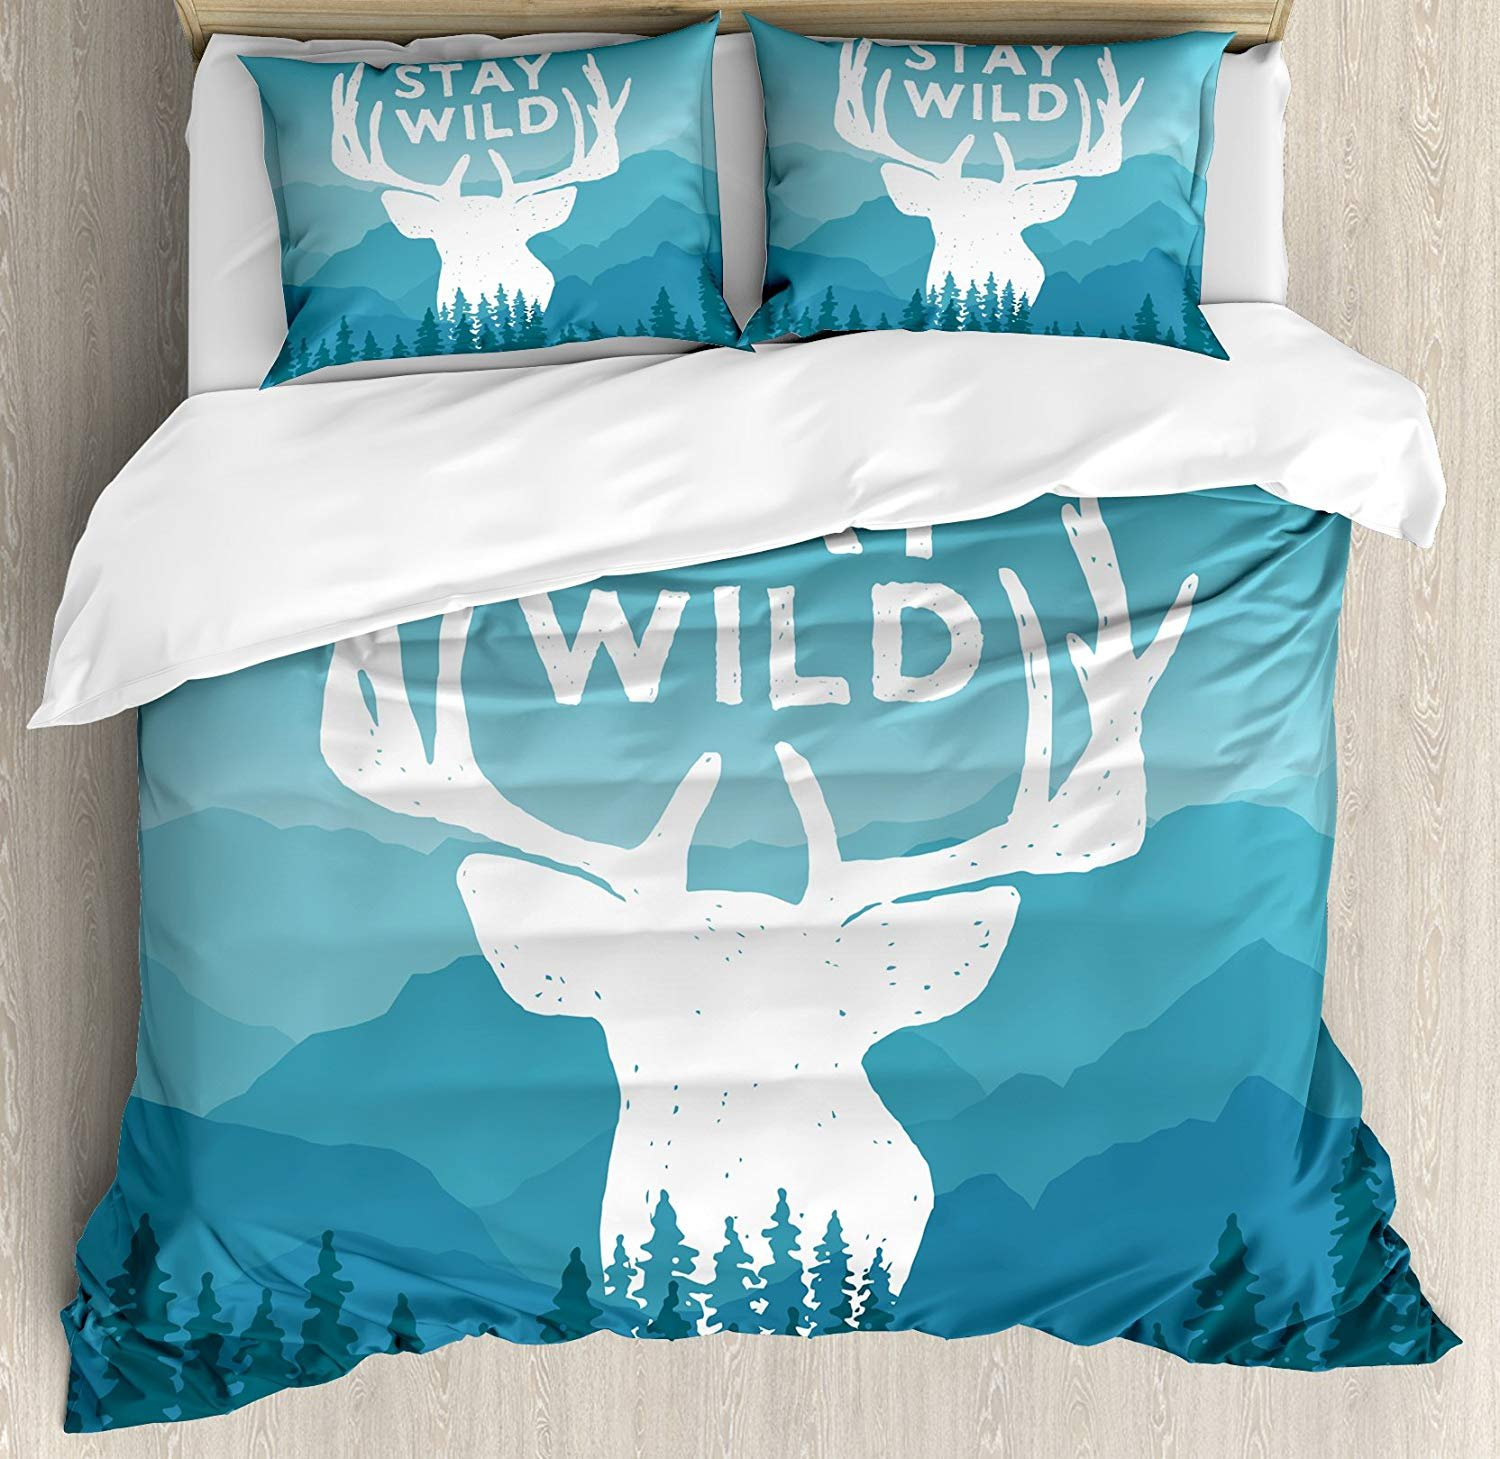 WAZZIT 4 Piece Duvet Cover Set Twin Adventure Wilderness Themed Stay Wild Quote with Scenic Mountain Backdrop Forest Print Bedding Set with Zipper Closure Matching 2 Pillow Shams by WAZZIT